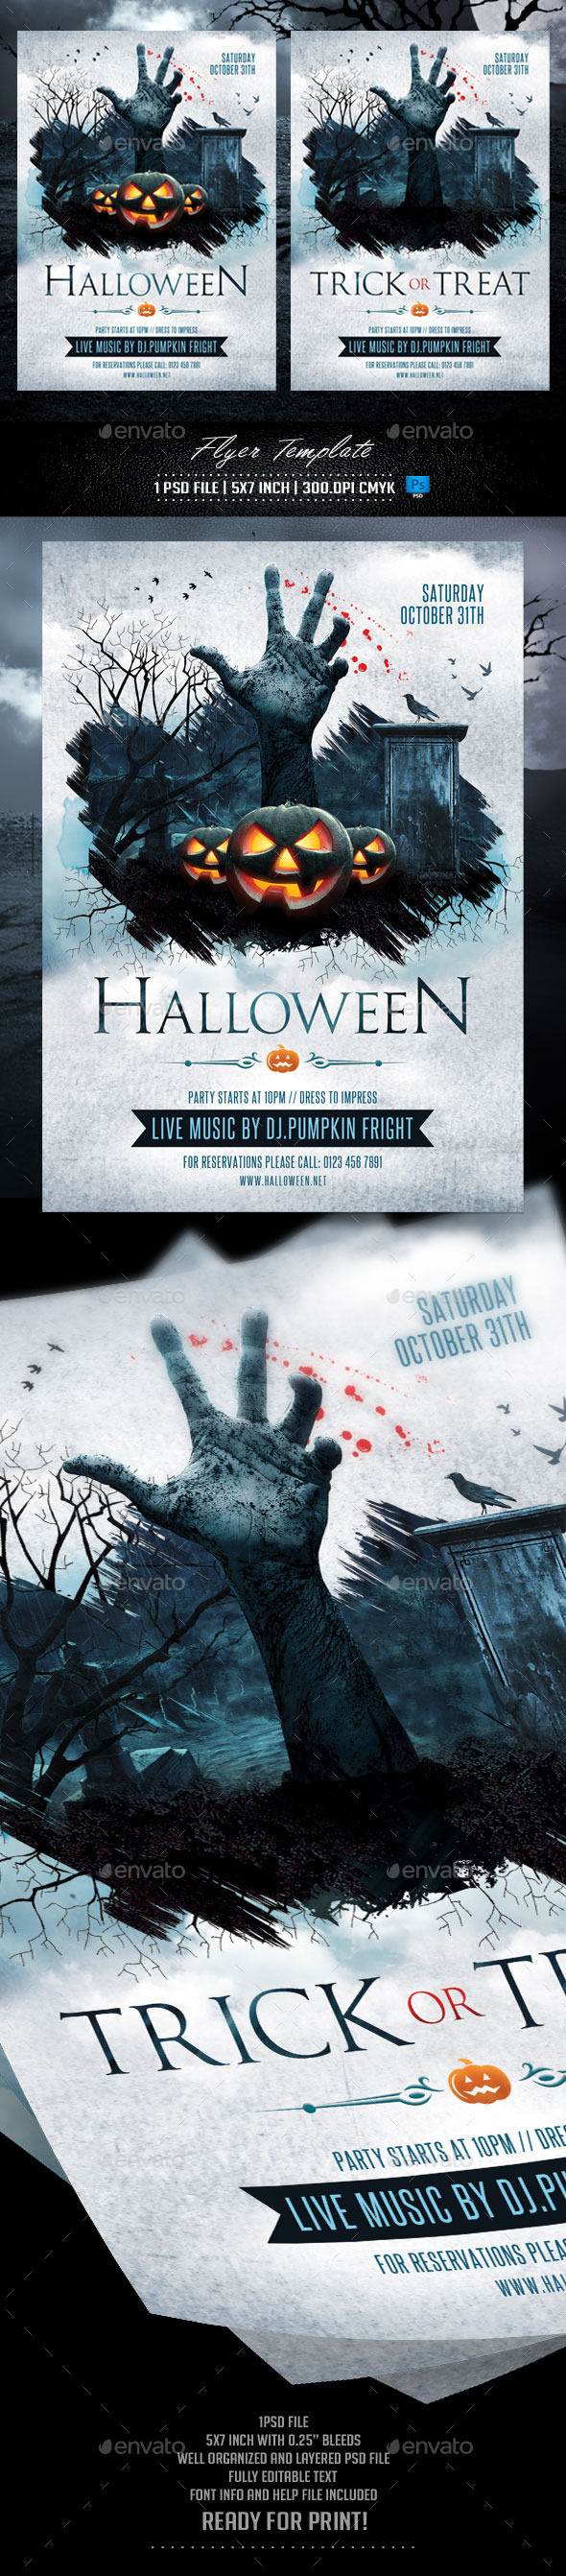 Spooky Graphics, Designs & Templates from GraphicRiver